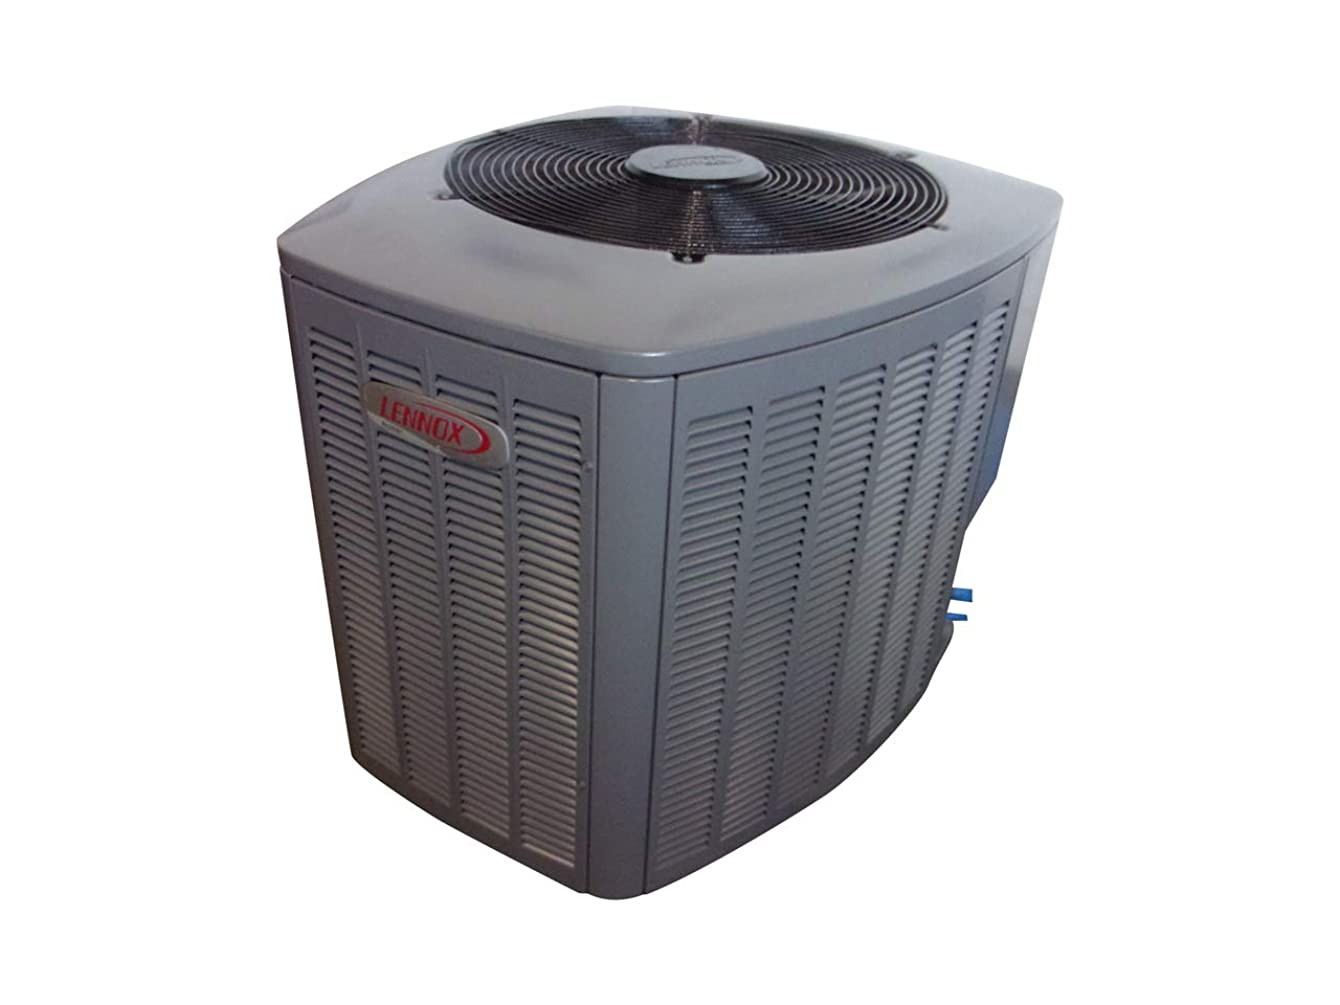 LENNOX Used Central Air Conditioner Condenser XC14-036-230-01 ACC-13082